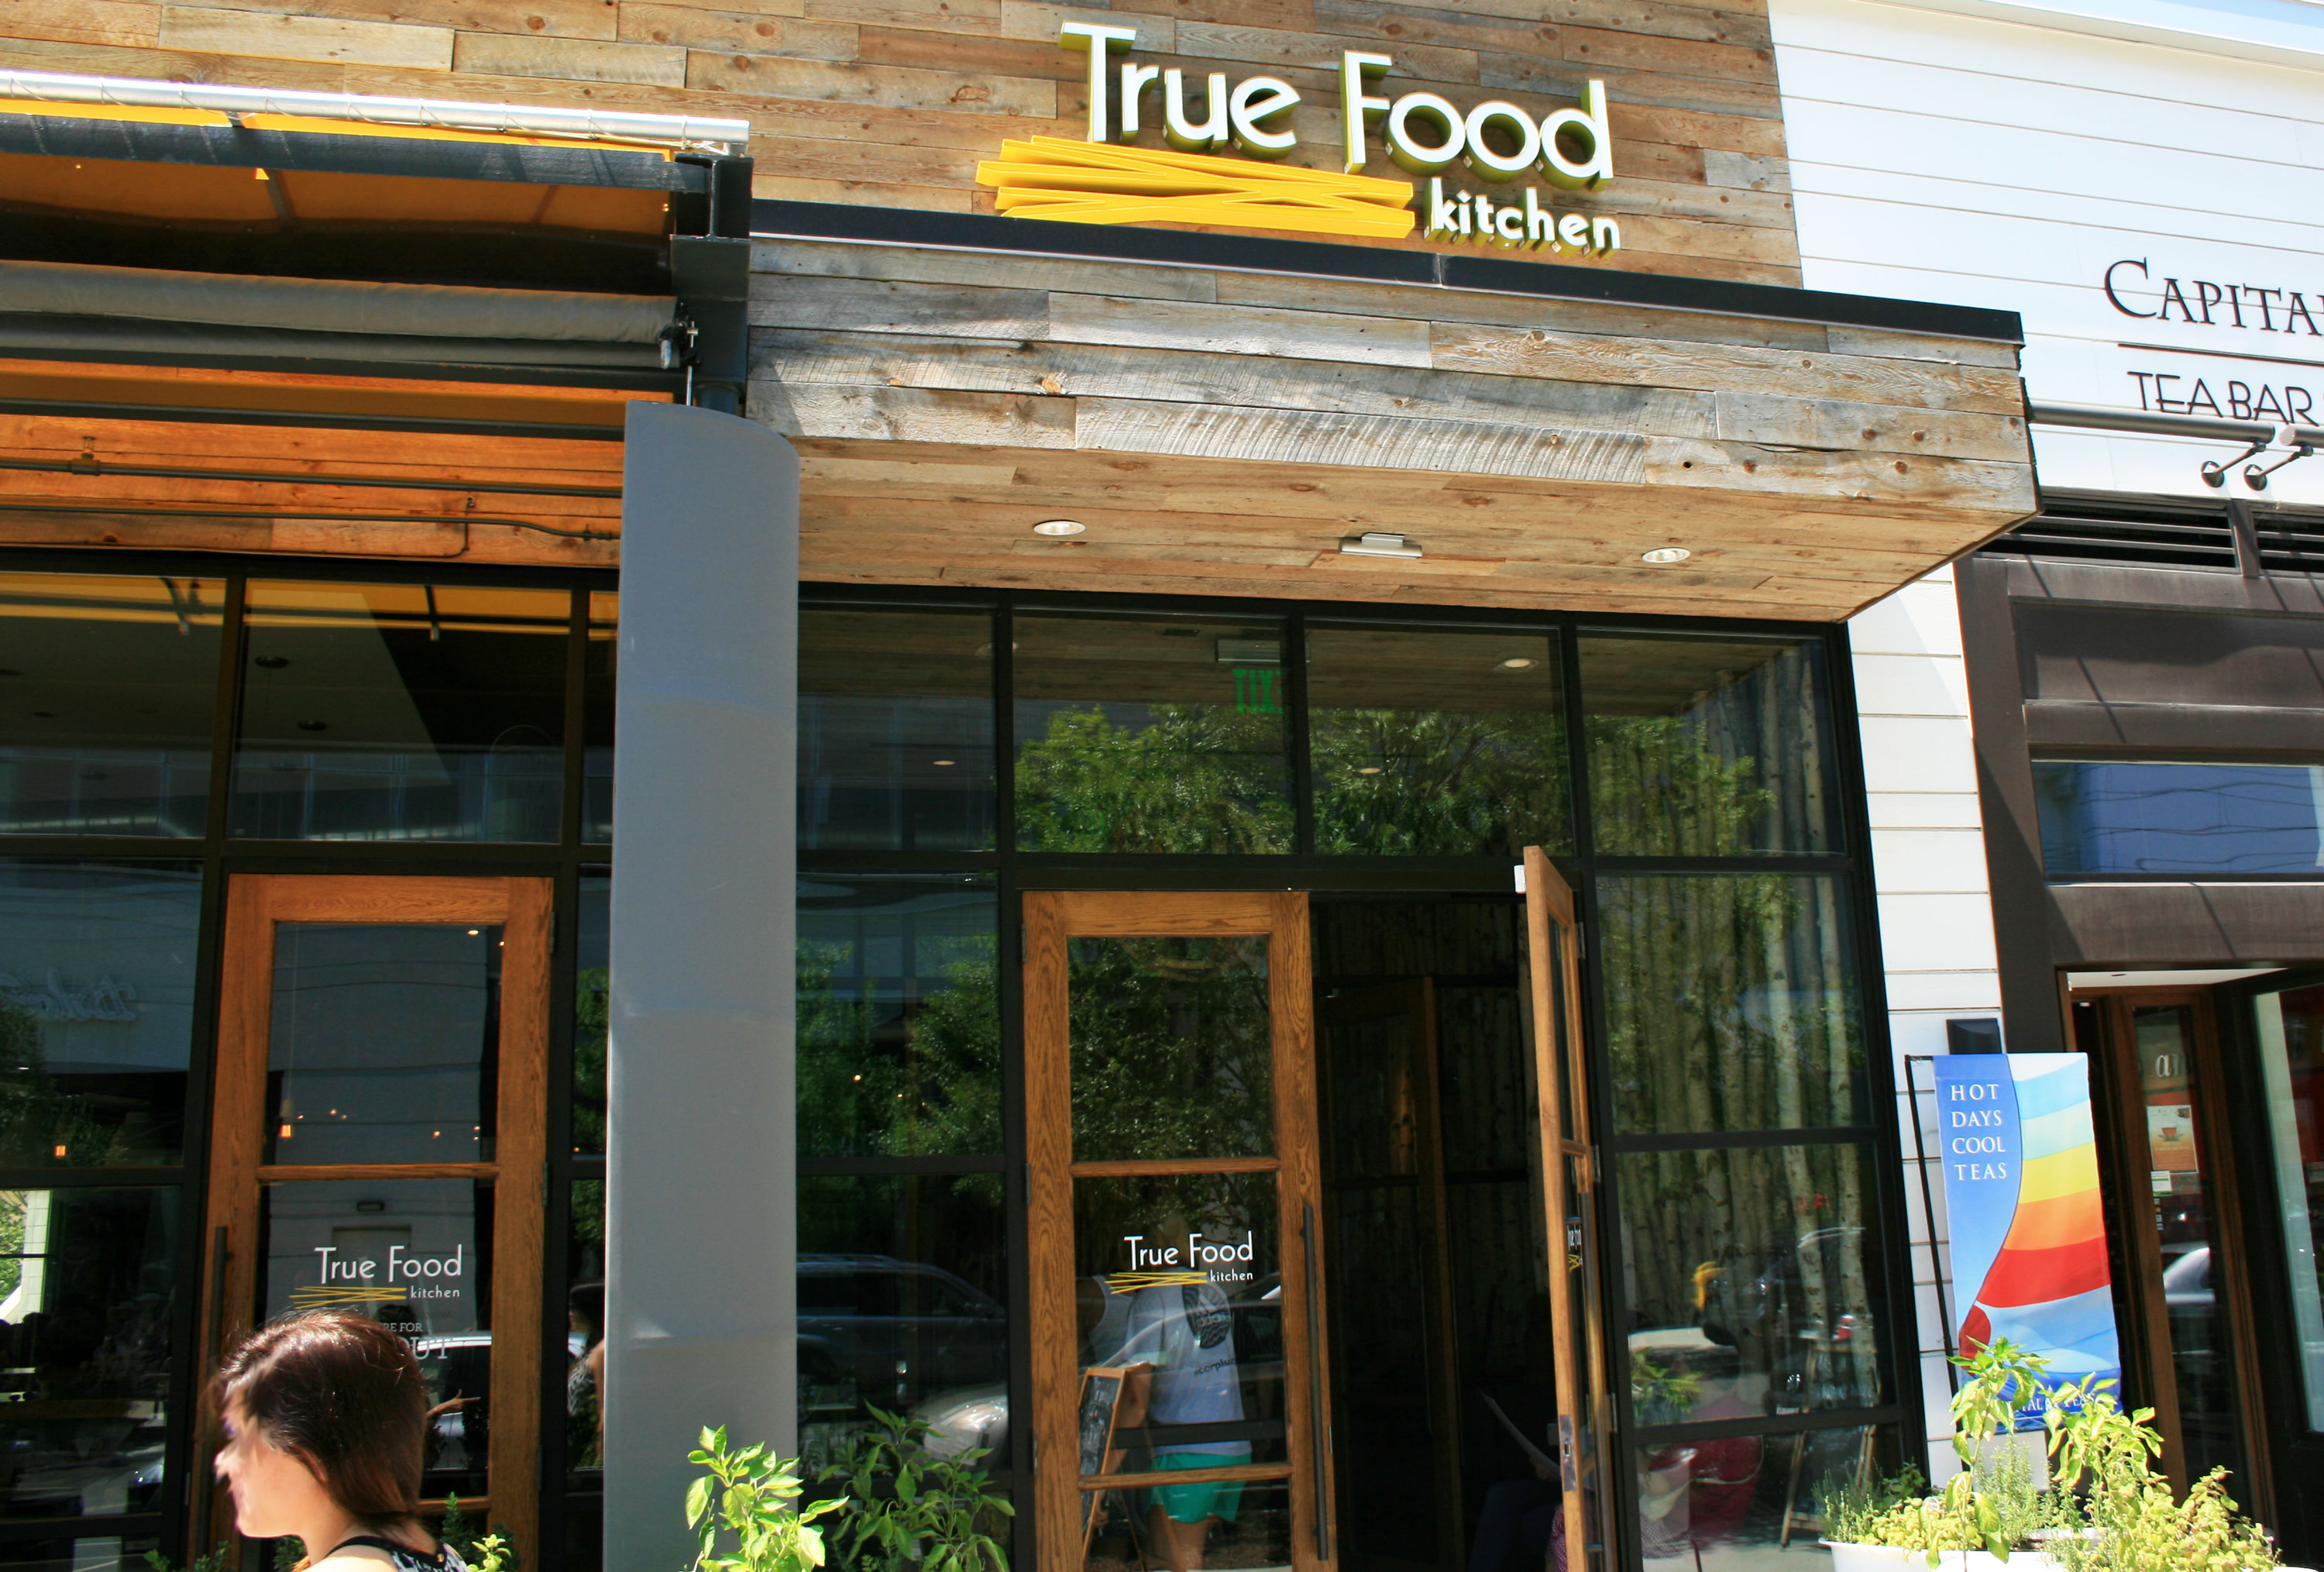 true food kitchen - True Food Kitchen Mosaic